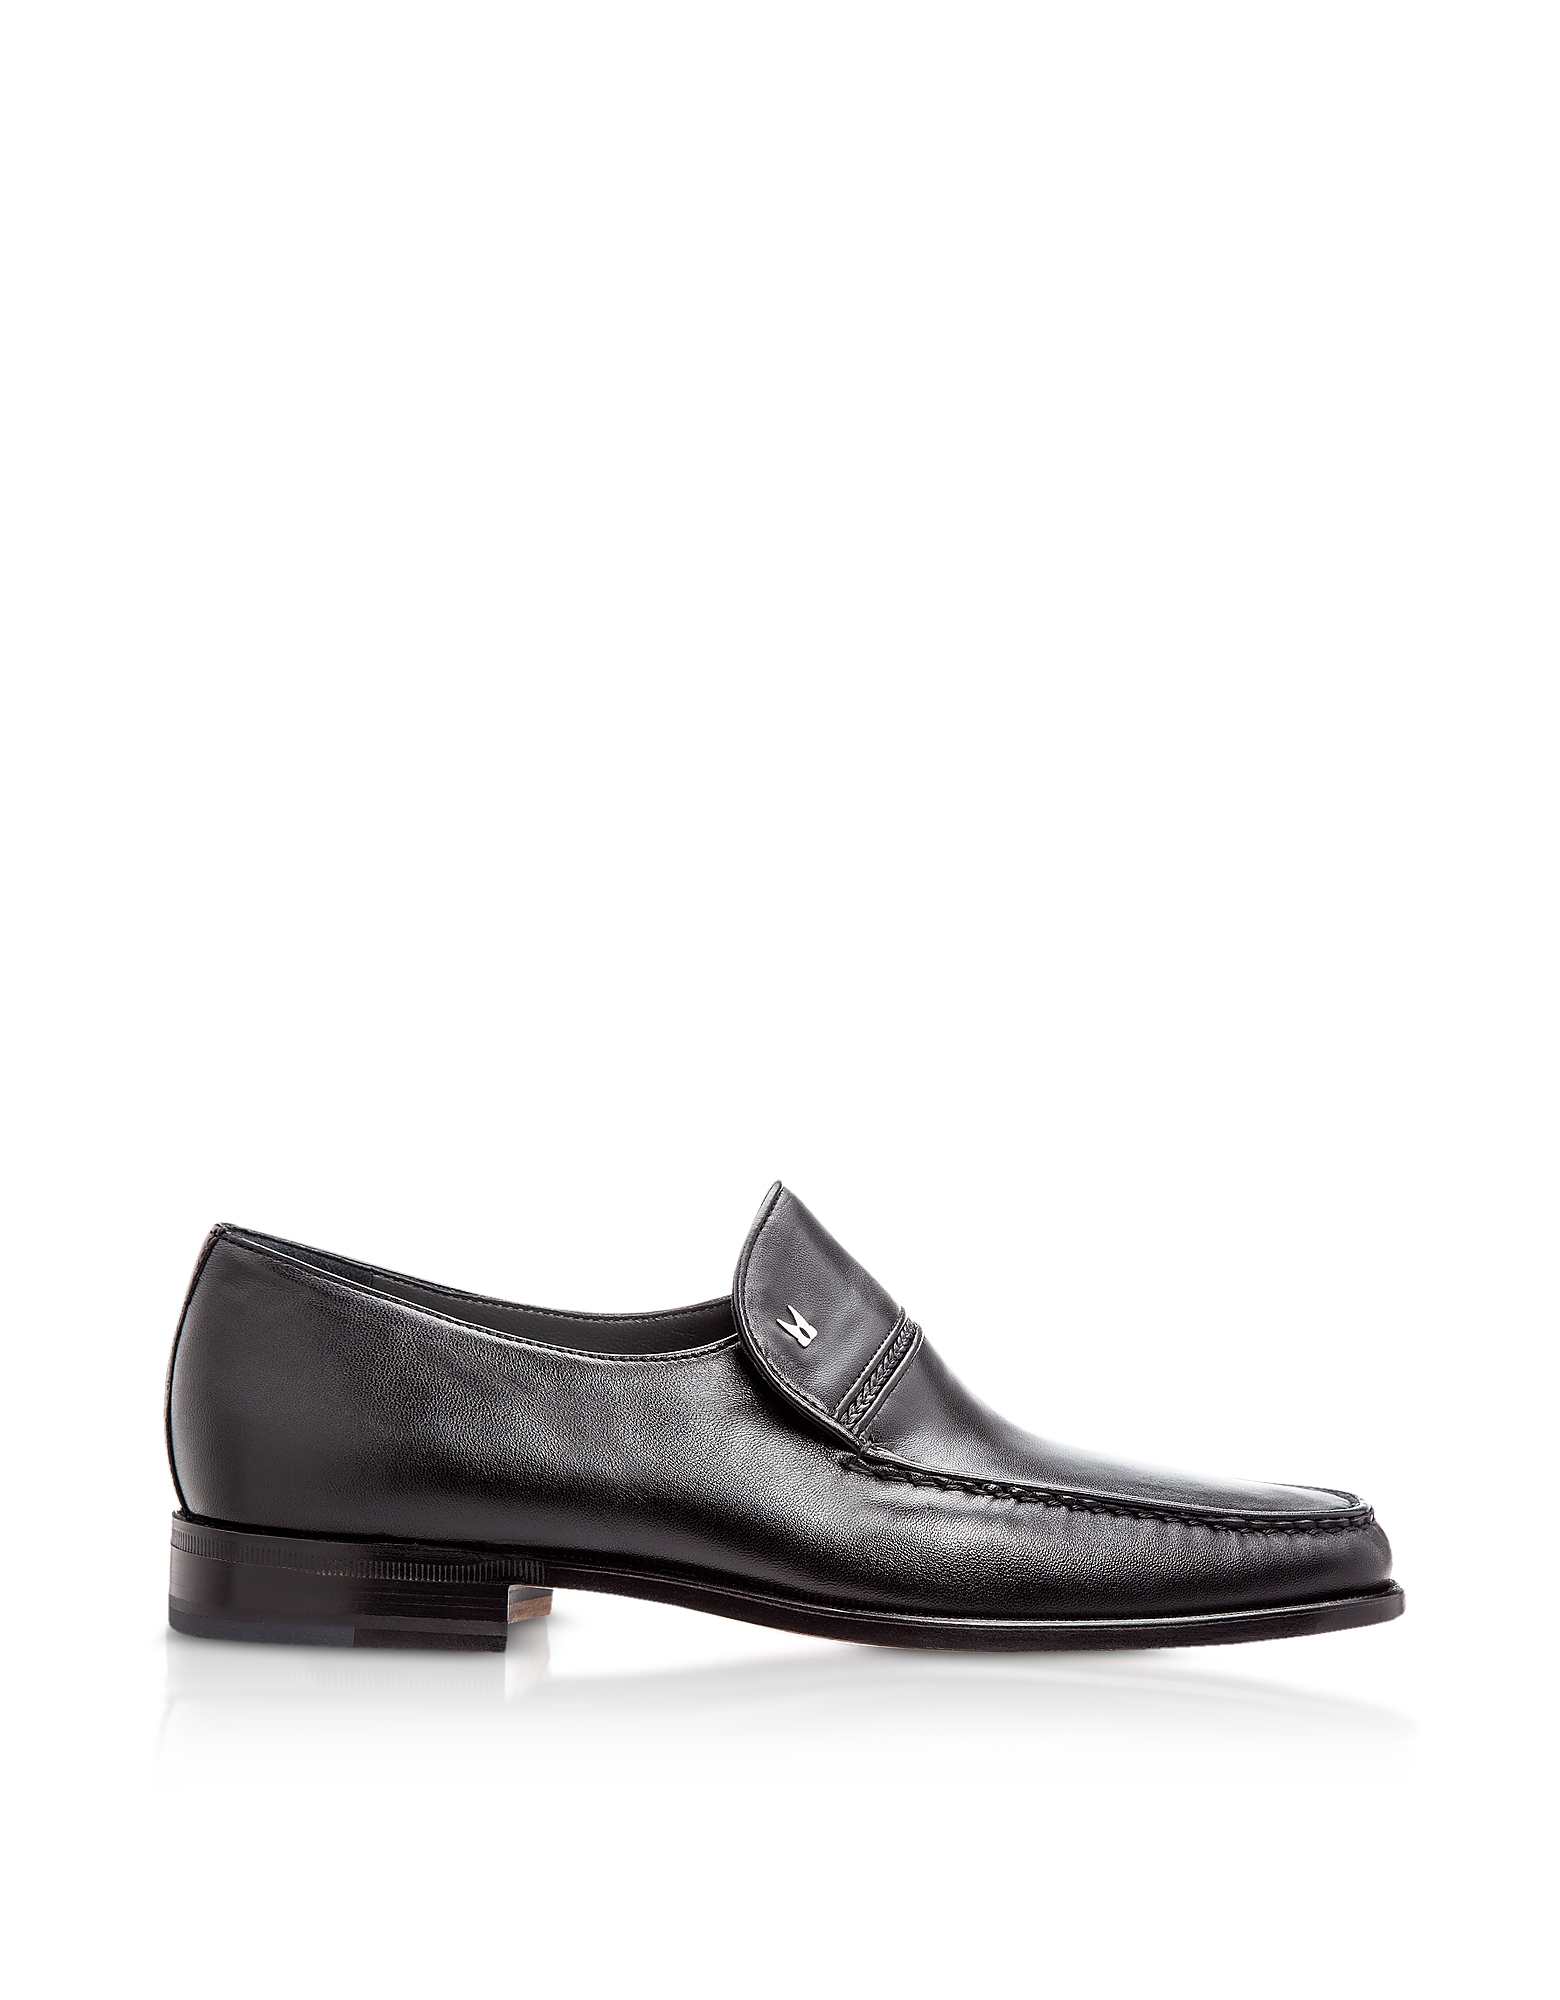 Moreschi Shoes, Bonn Black Lambskin Loafer Shoes